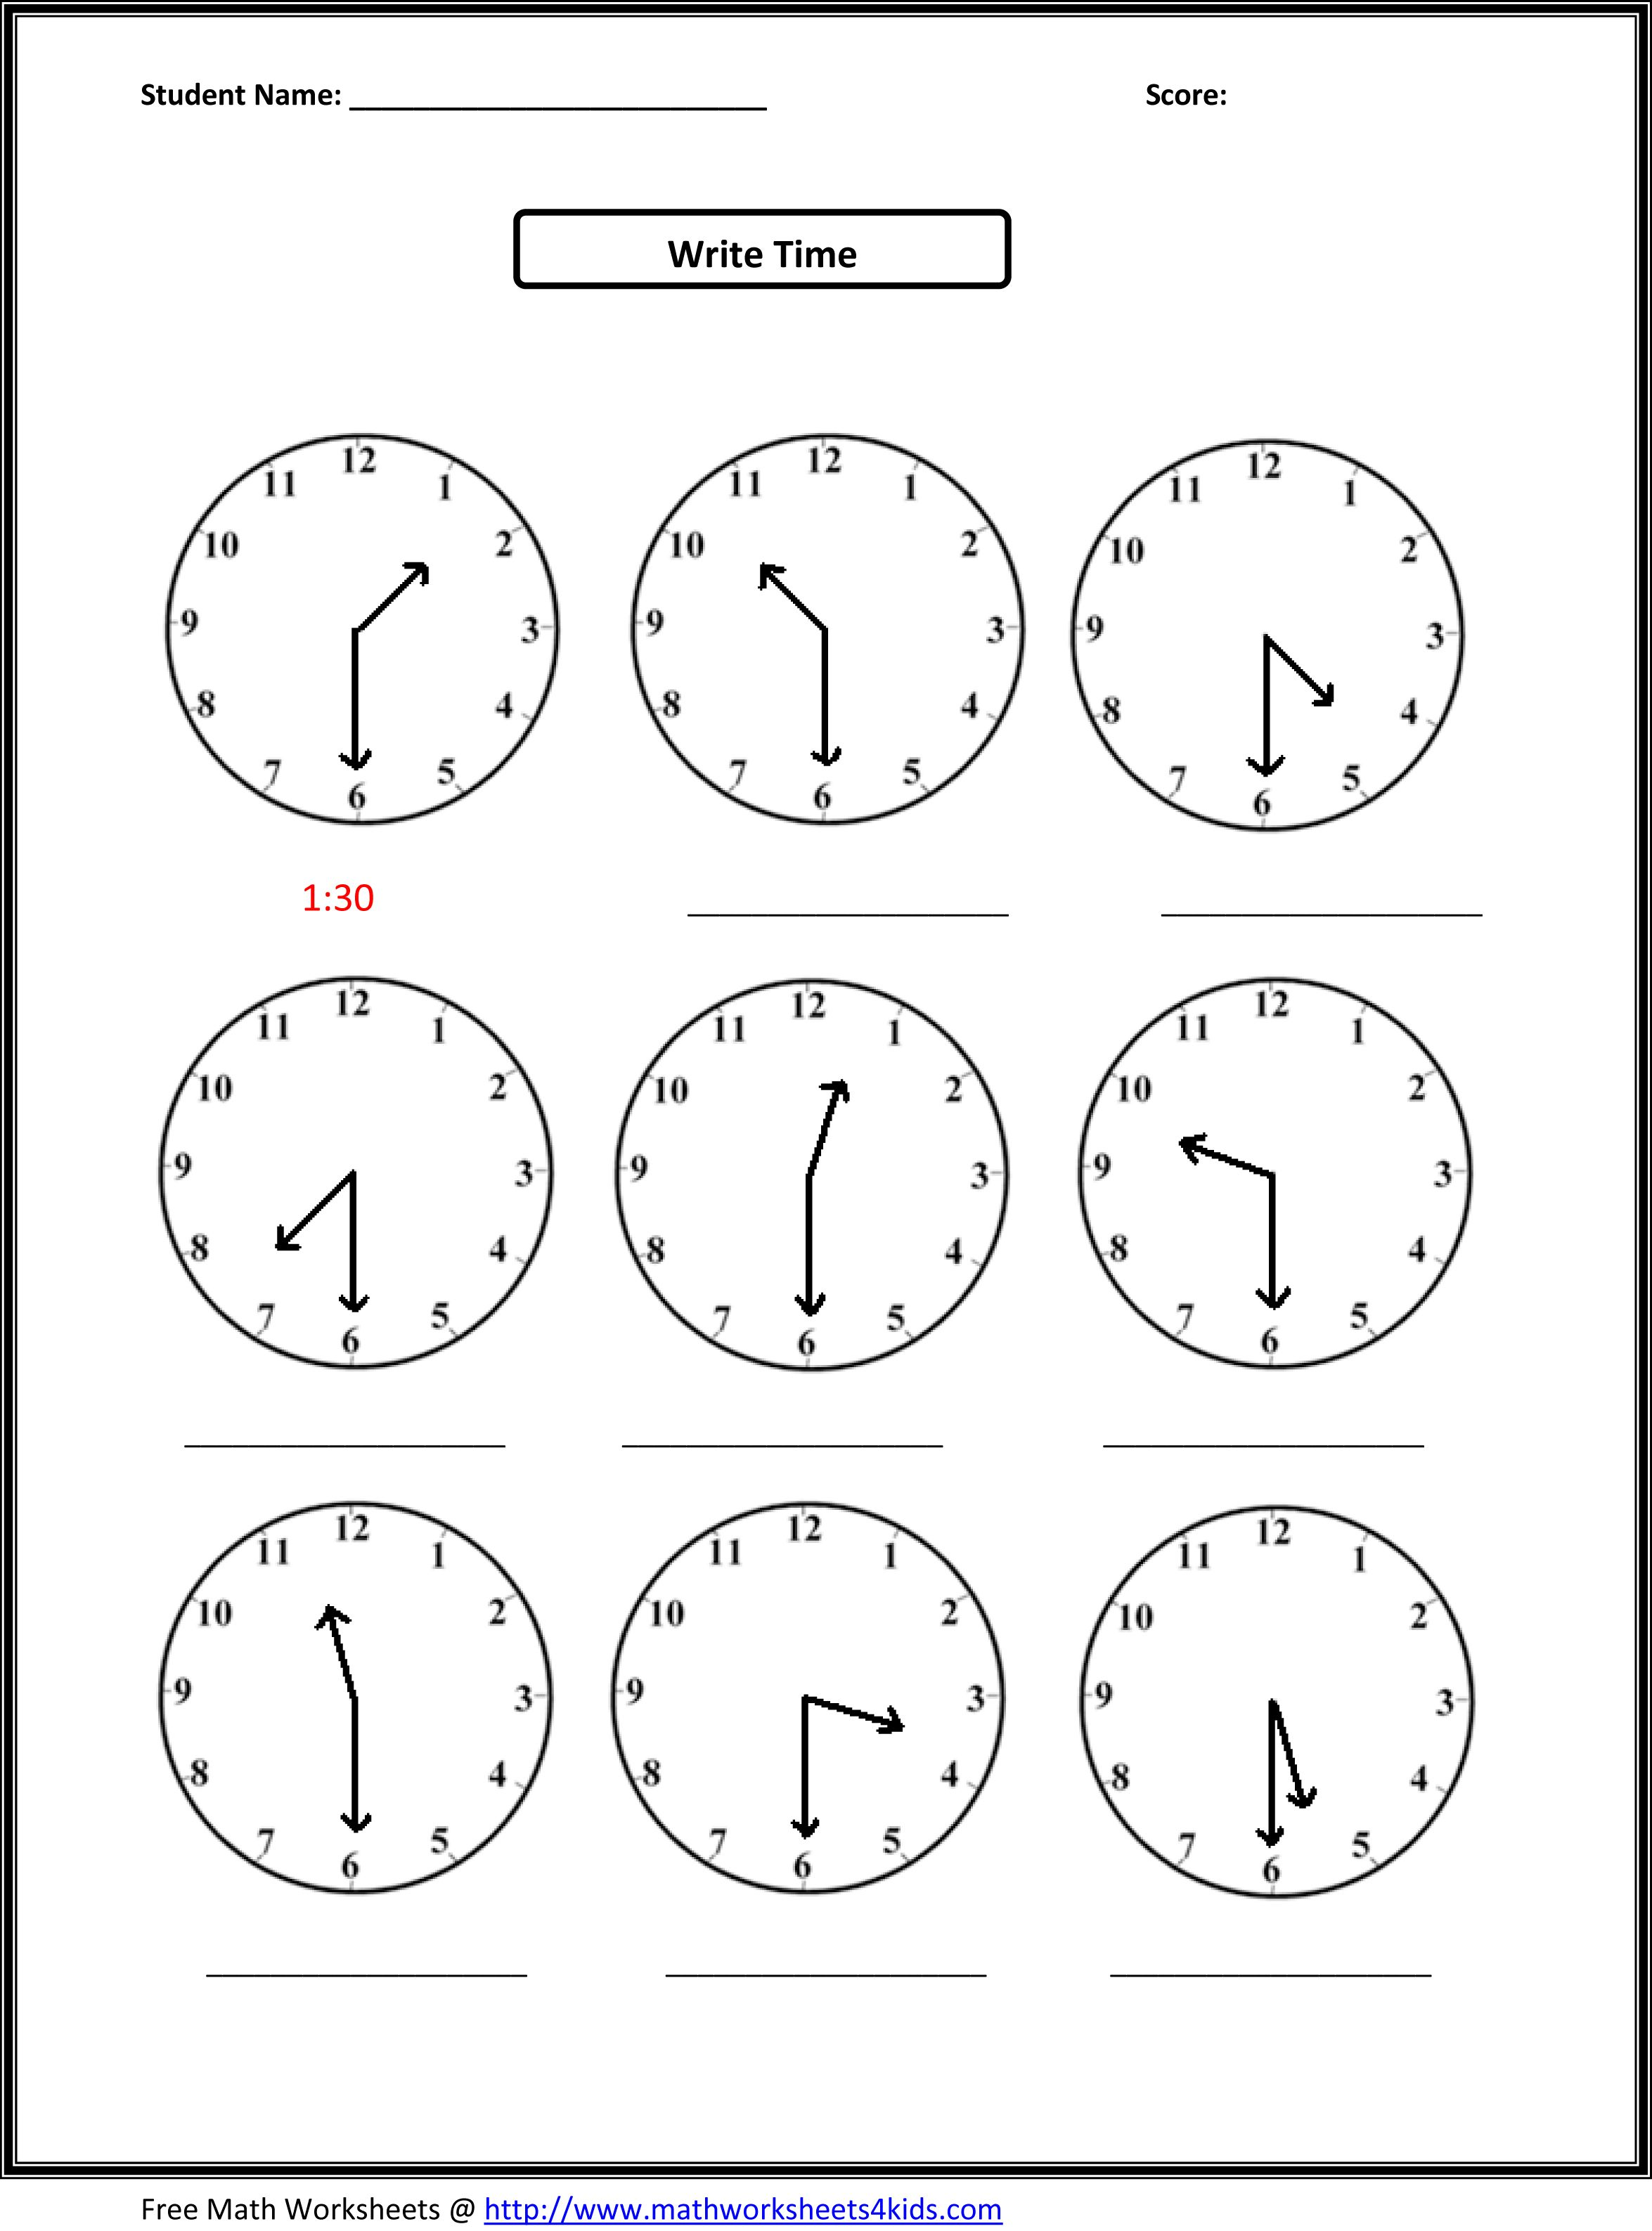 Weirdmailus  Splendid Worksheet On Time For Grade   Reocurent With Engaging Free Printable Telling Time Worksheets Nd Grade  Reocurent With Agreeable Reading Grade  Worksheets Also Simple Ratio Worksheet In Addition Areas Of Circles Worksheet And Multiple Meaning Words Worksheet Th Grade As Well As Mab Blocks Worksheets Additionally Recognizing Shapes Worksheets From Reocurentcom With Weirdmailus  Engaging Worksheet On Time For Grade   Reocurent With Agreeable Free Printable Telling Time Worksheets Nd Grade  Reocurent And Splendid Reading Grade  Worksheets Also Simple Ratio Worksheet In Addition Areas Of Circles Worksheet From Reocurentcom